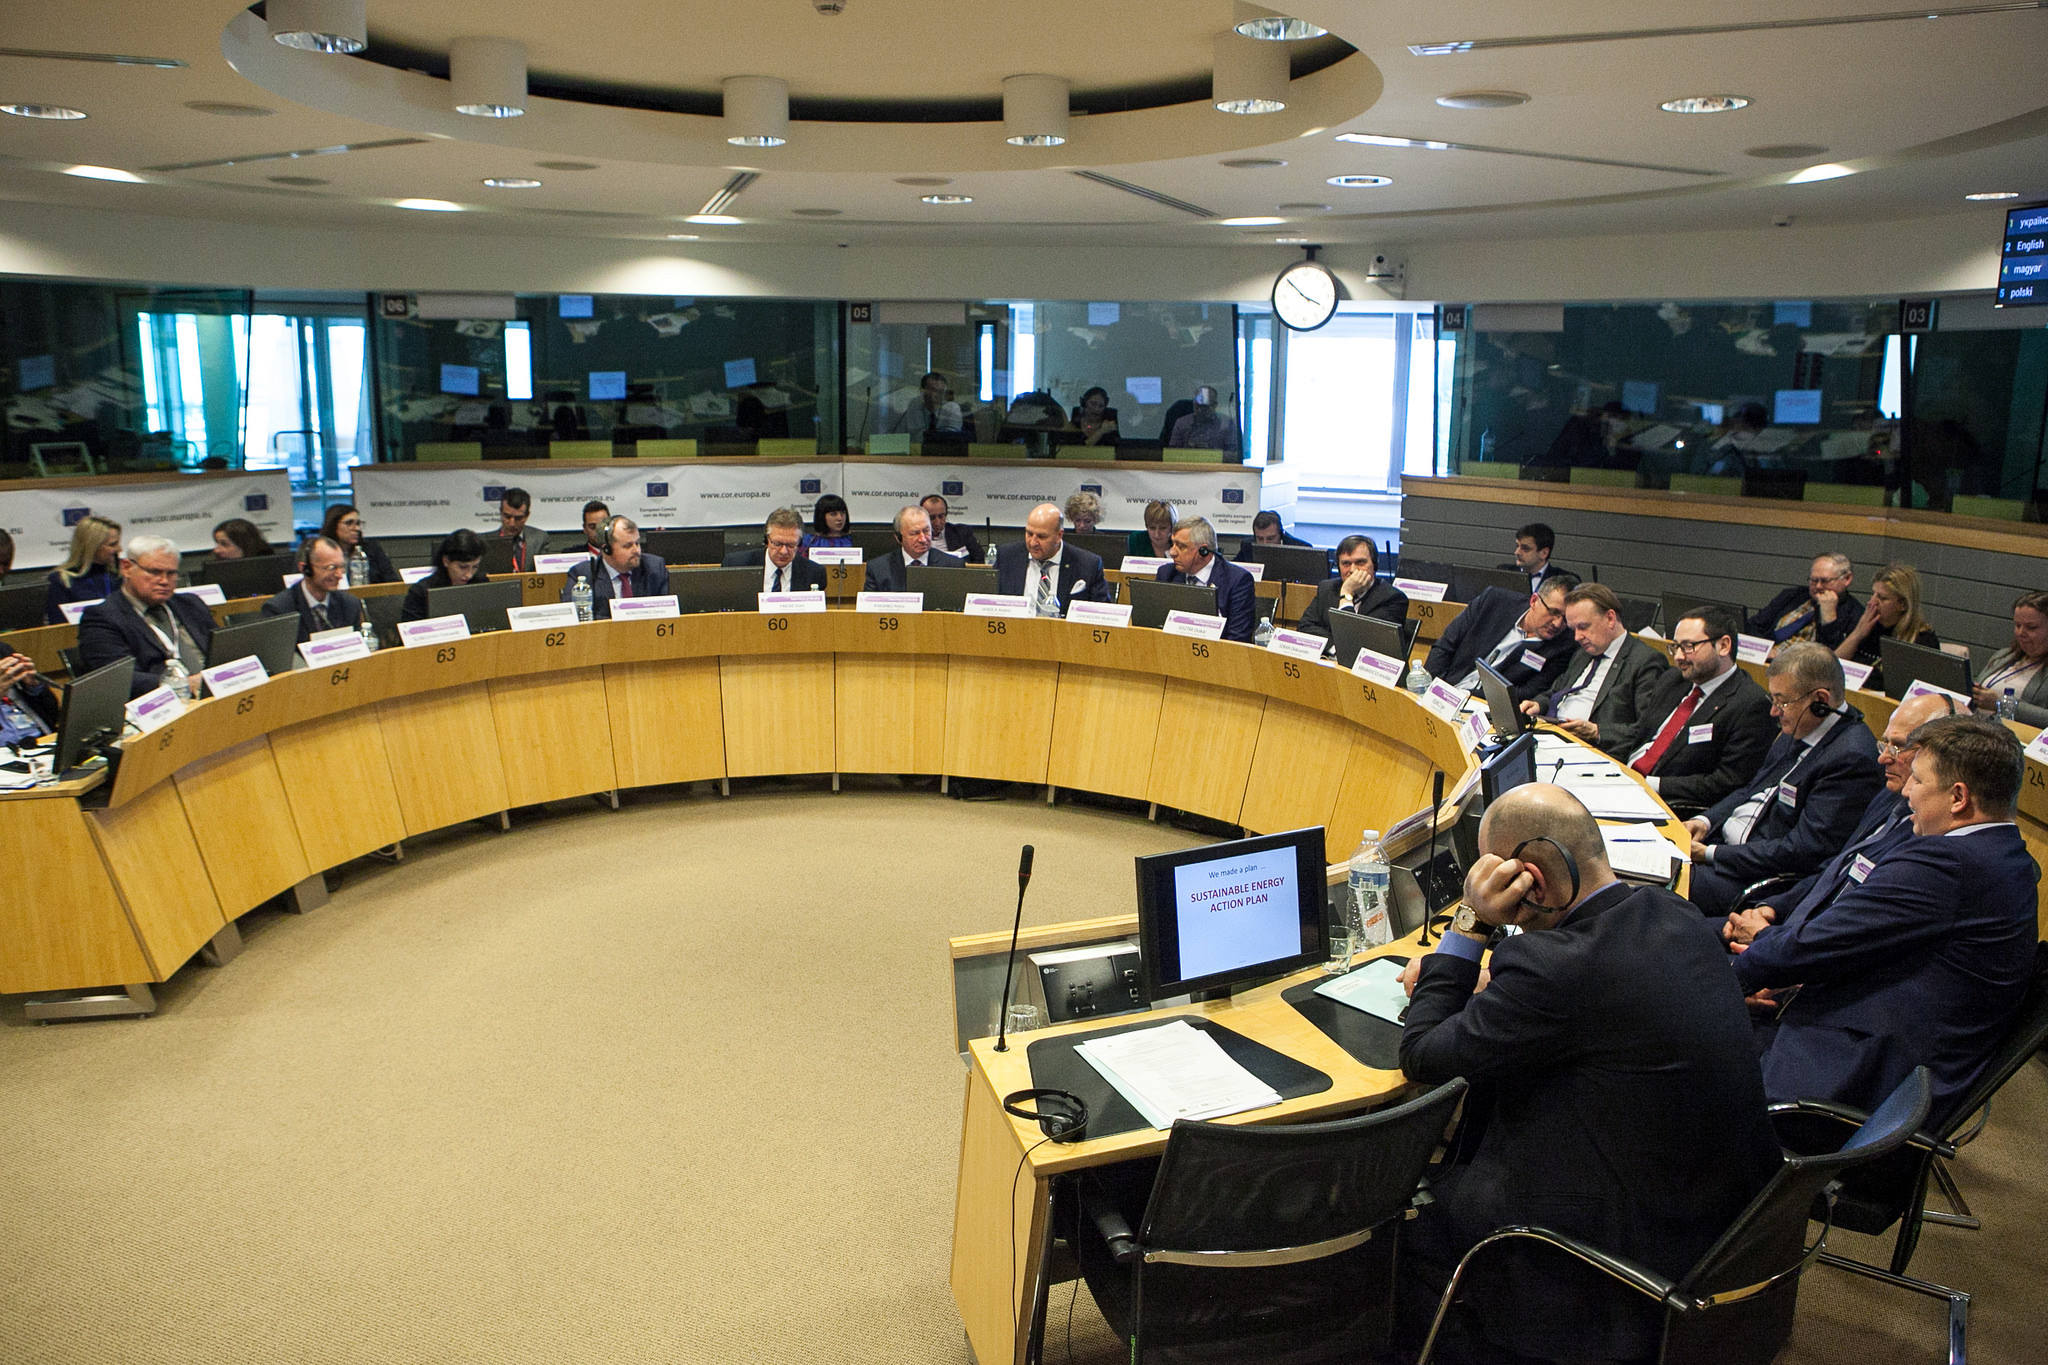 Ukrainian hromadas and regions presented their achievements and plans within Peer-to-Peer cooperation in Brussels